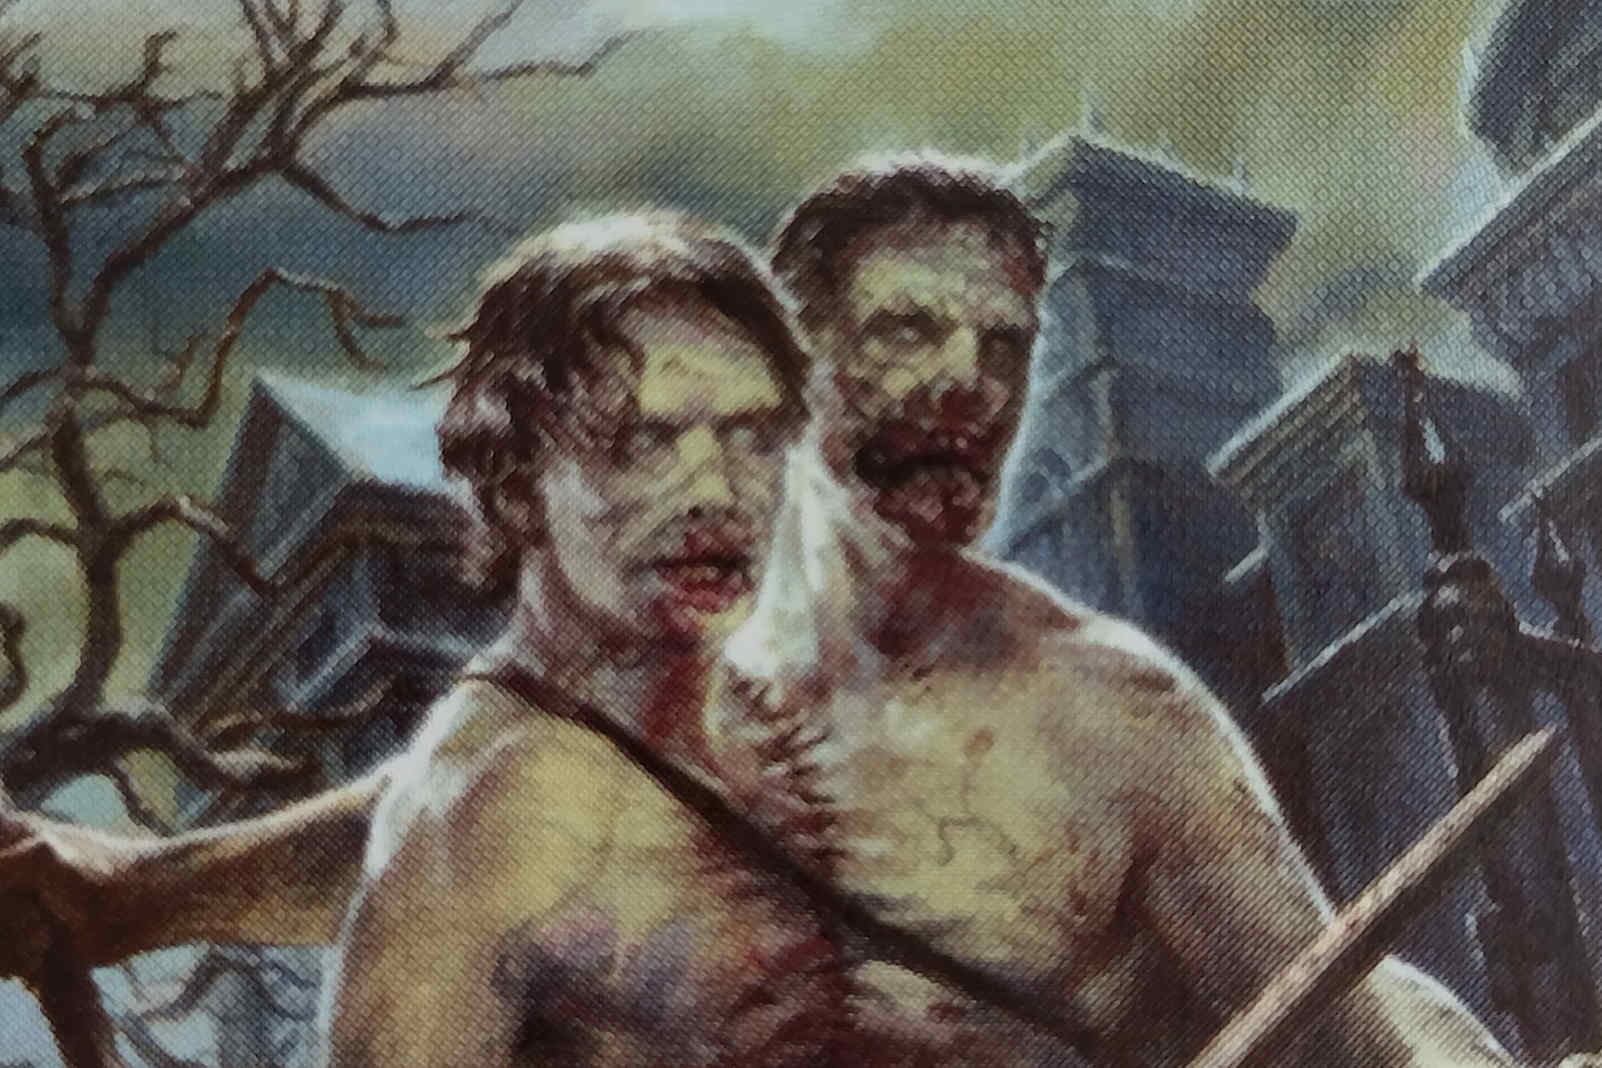 two headed zombie mtg card with menace